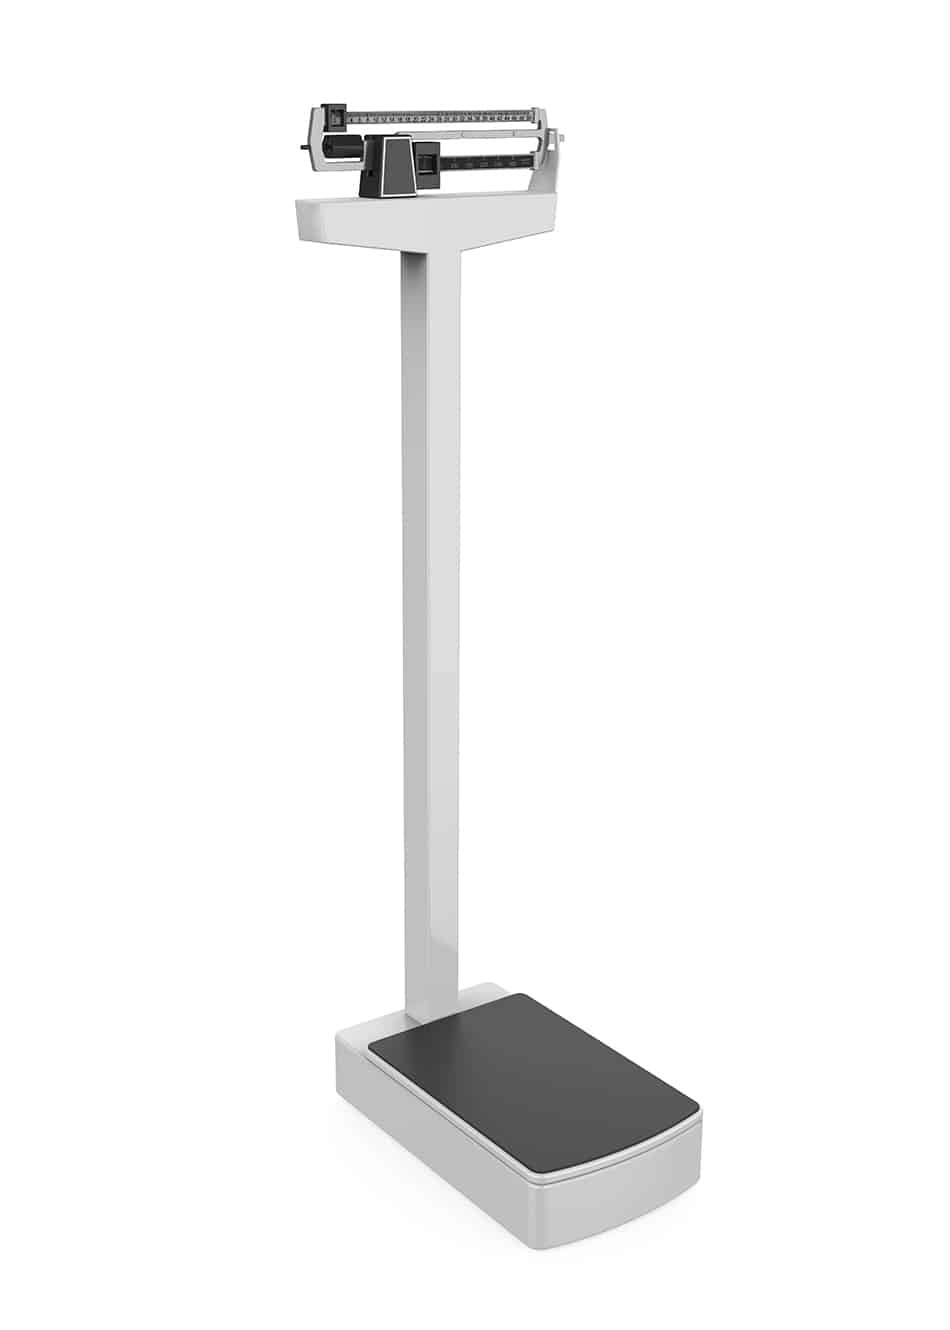 Physicians' Scale